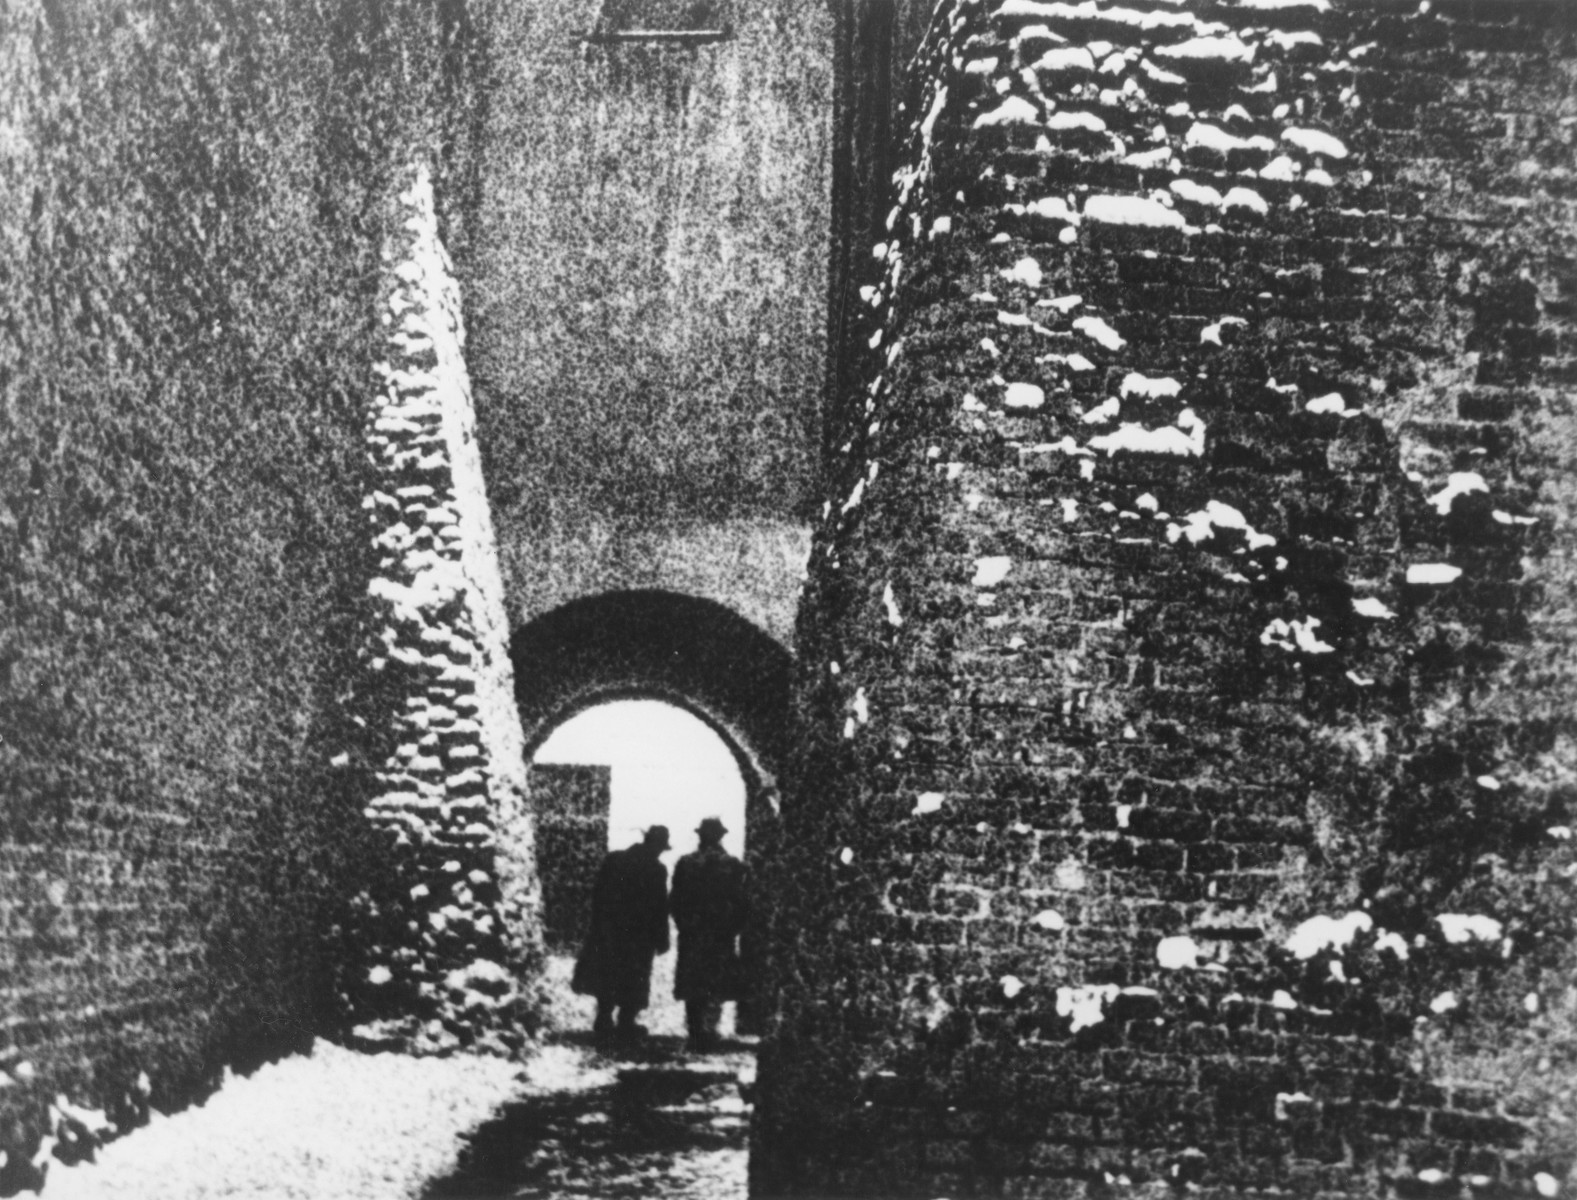 Two men walk through the archway on the Ku Farze alley in Lublin.